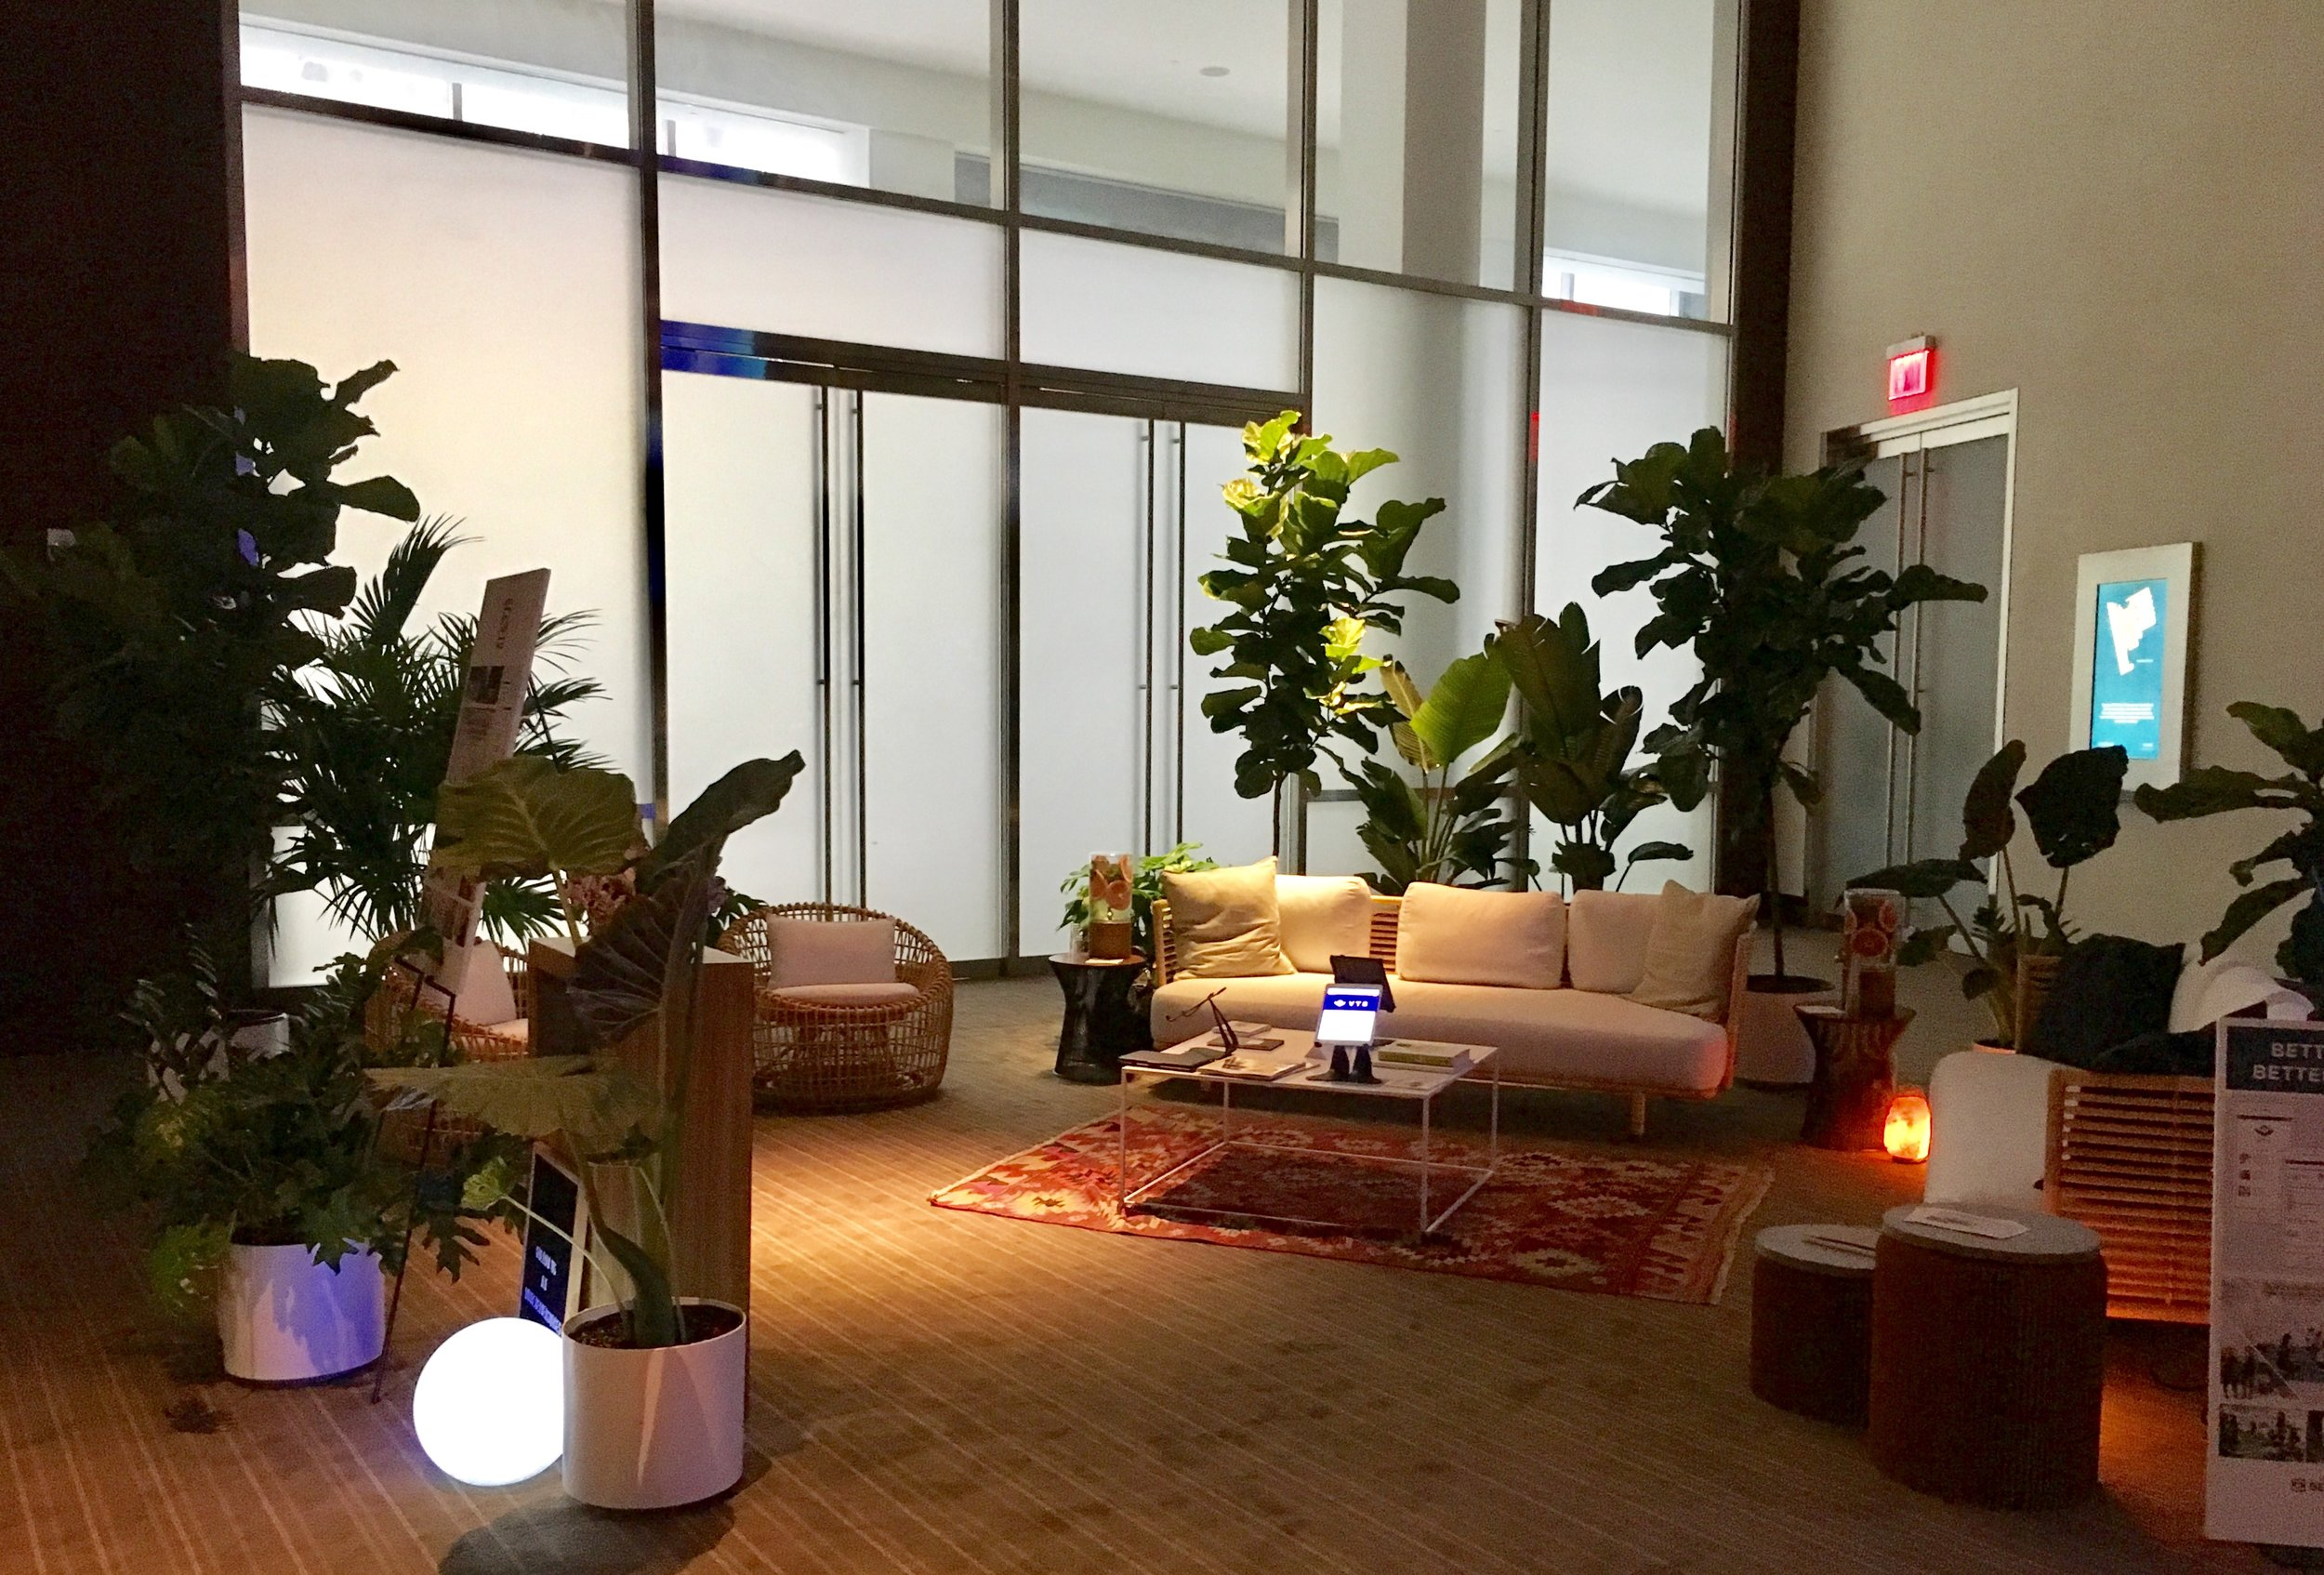 The Better Spaces team created a library and lounge space for attendees to relax or network.